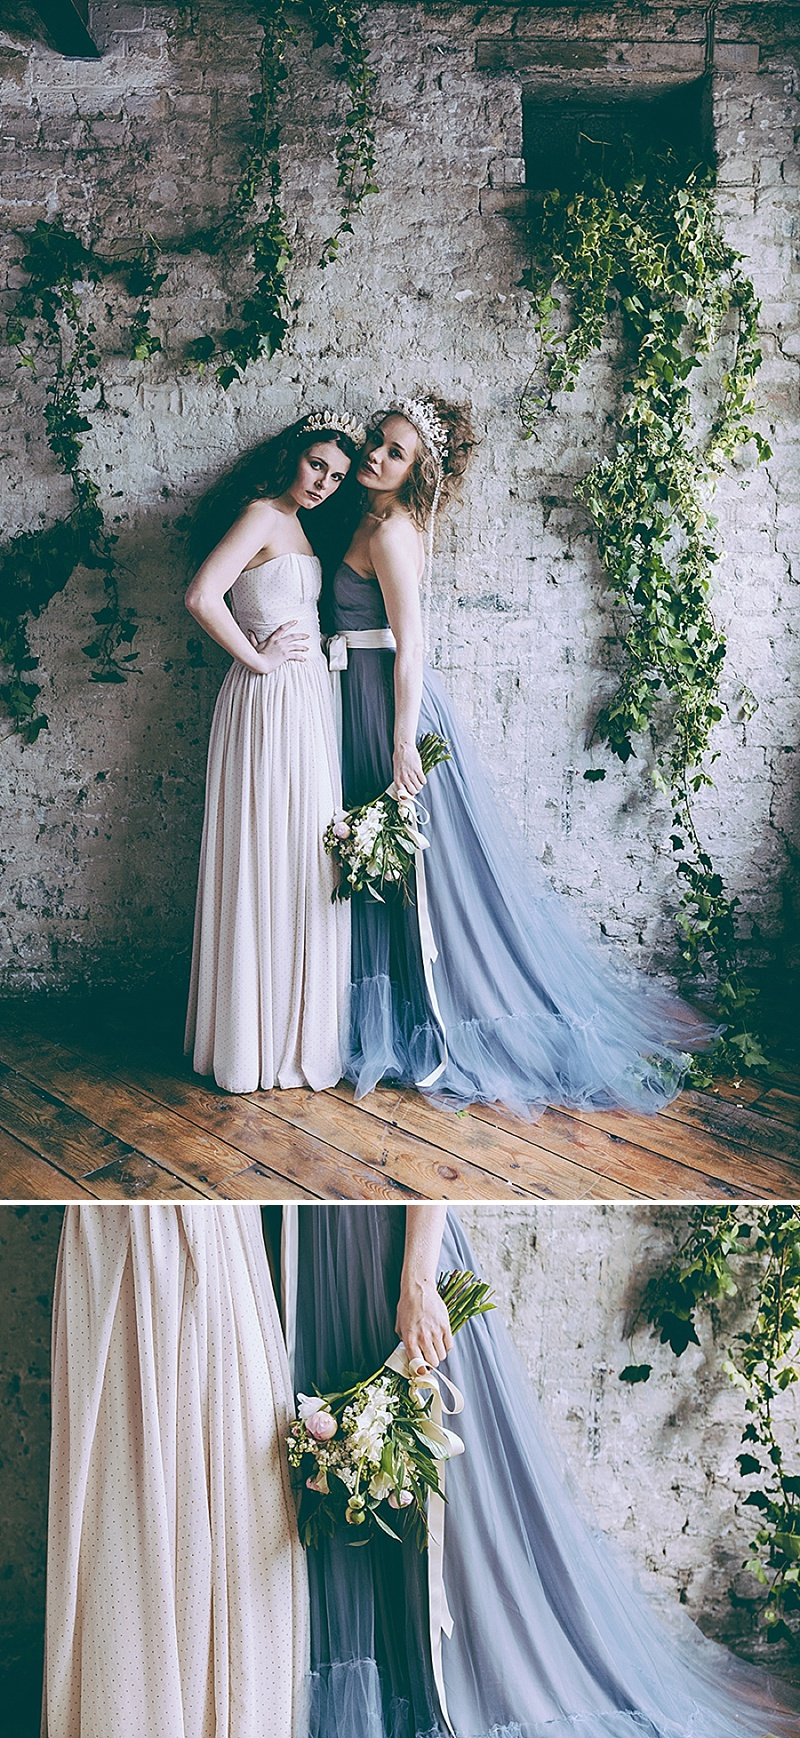 Rustic And Romantic Fairytale Bridal Inspiration Shoot With Gowns From Faith Caton-Barber And Accessories From Rosie Weisencrantz With Images By Miss Gen Photography 8